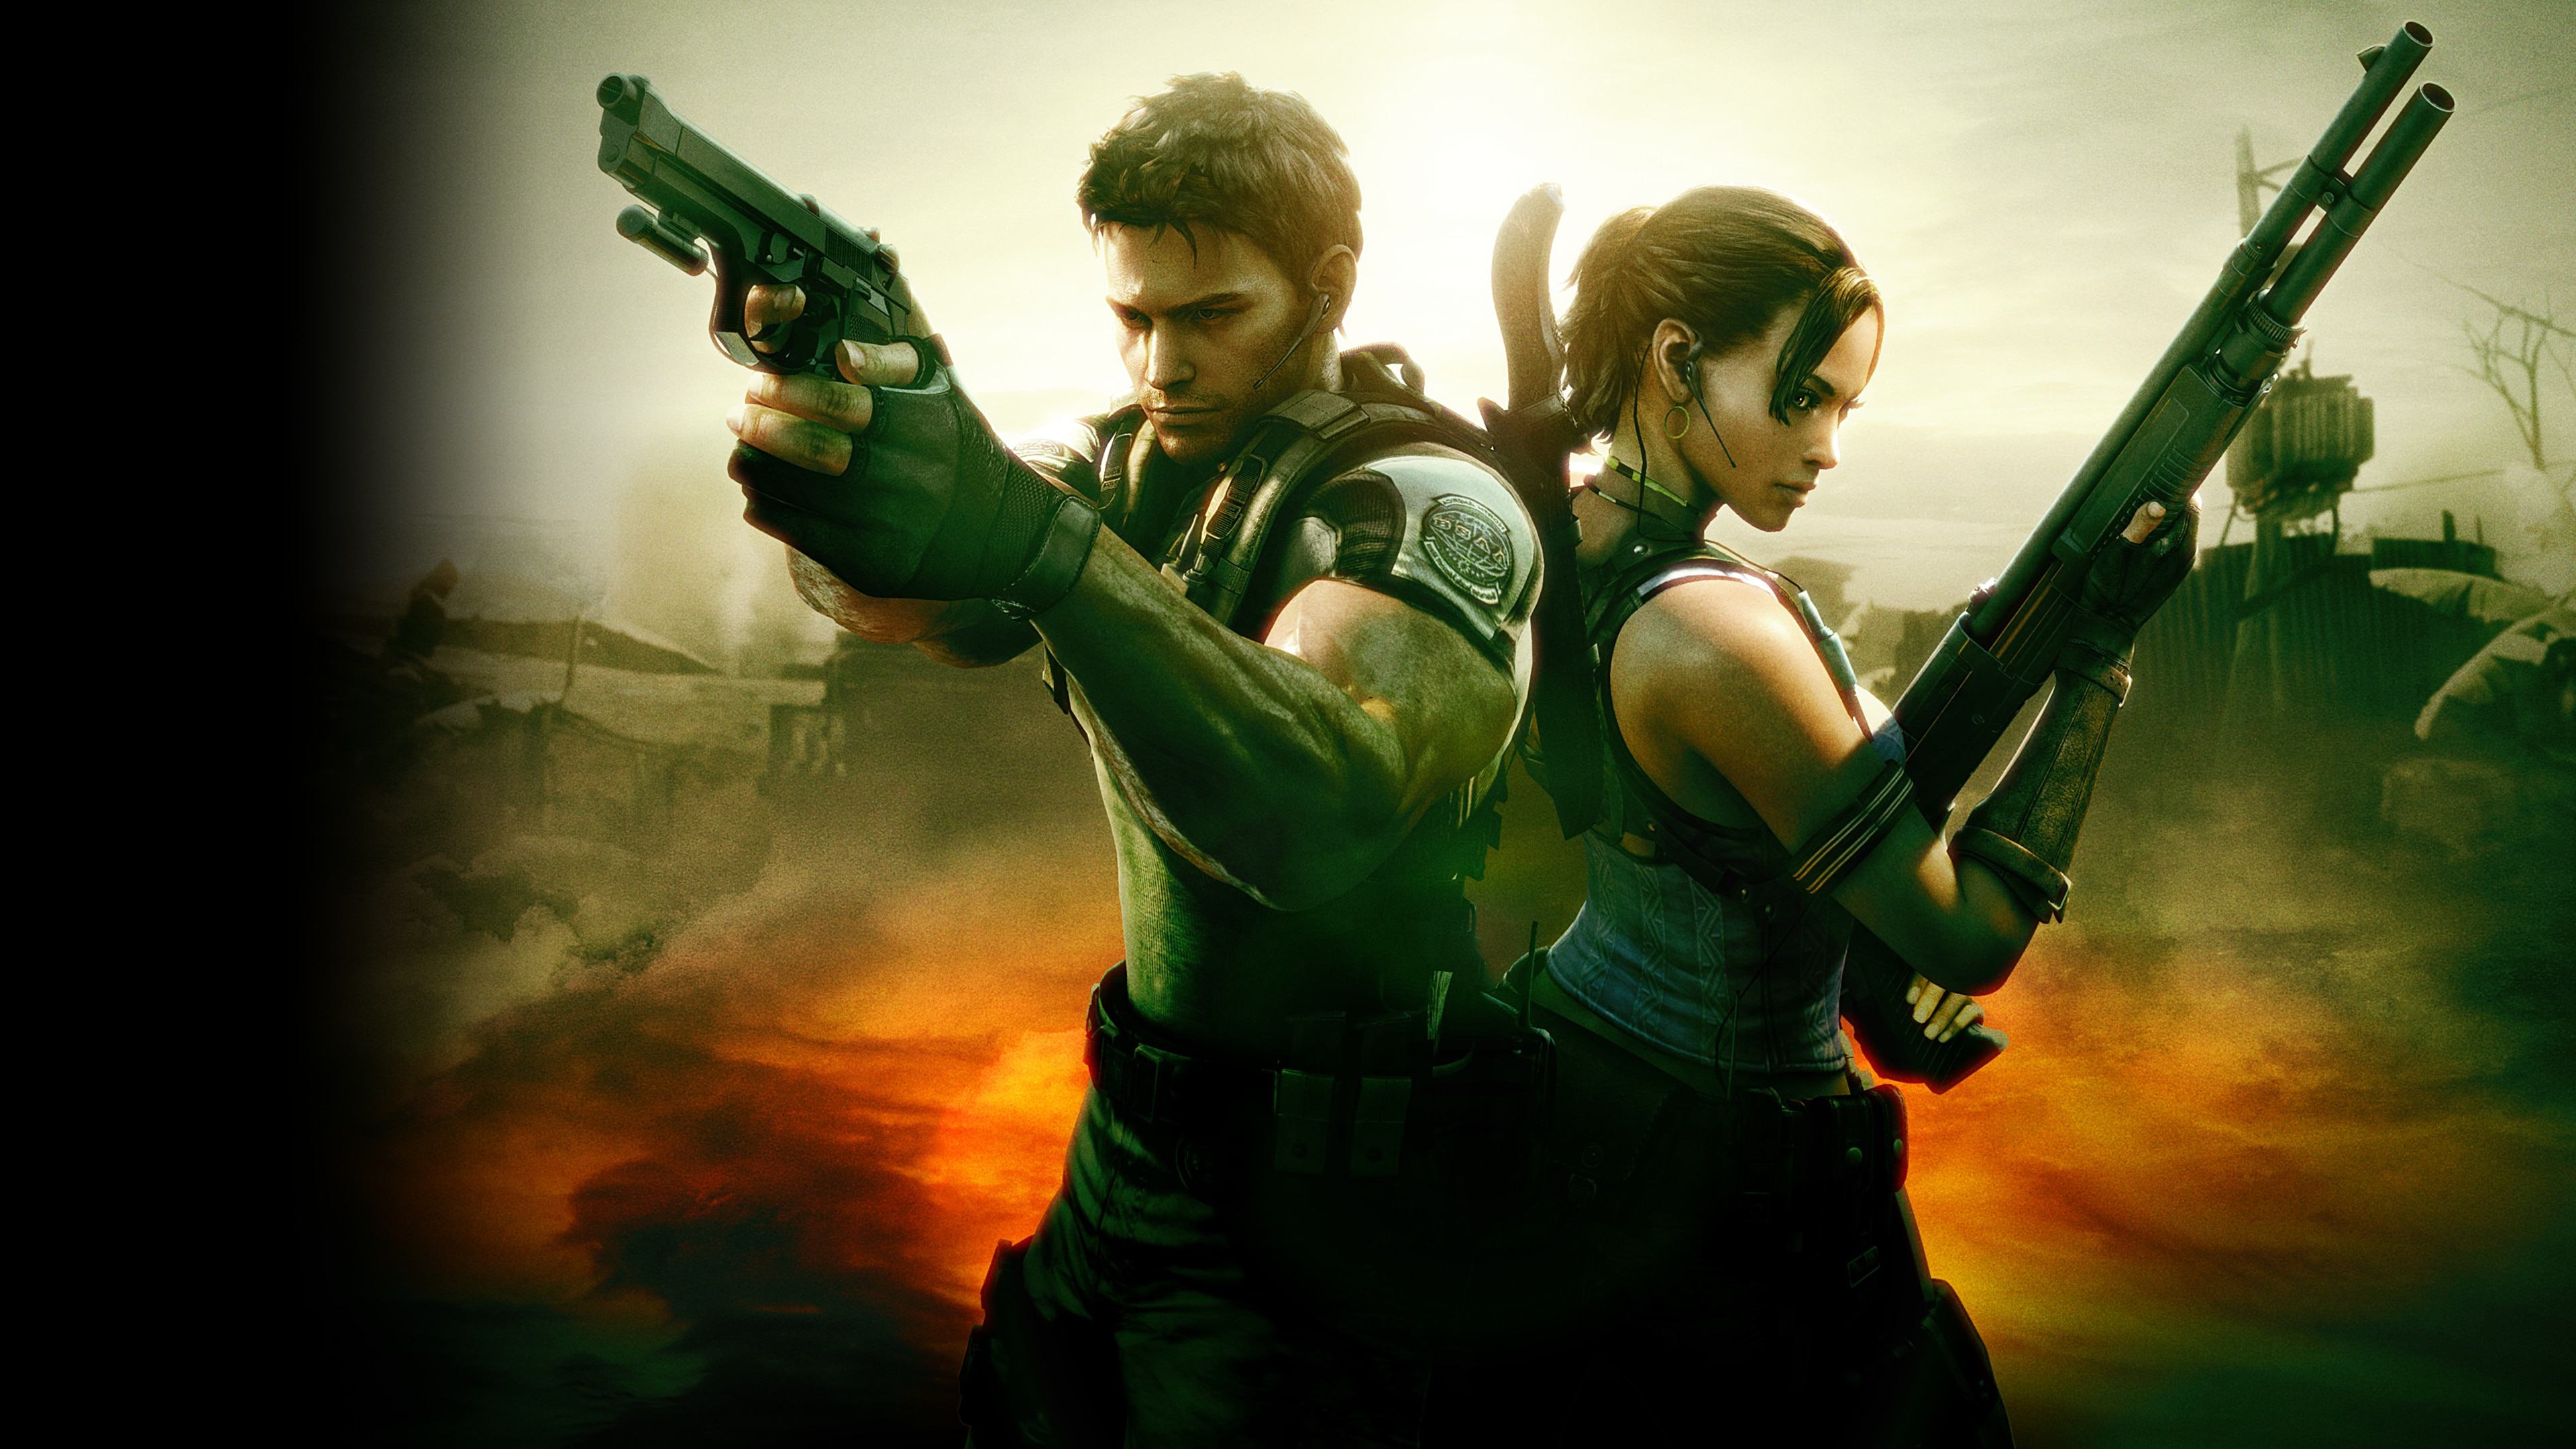 RESIDENT EVIL 5 (English/Chinese Ver.)